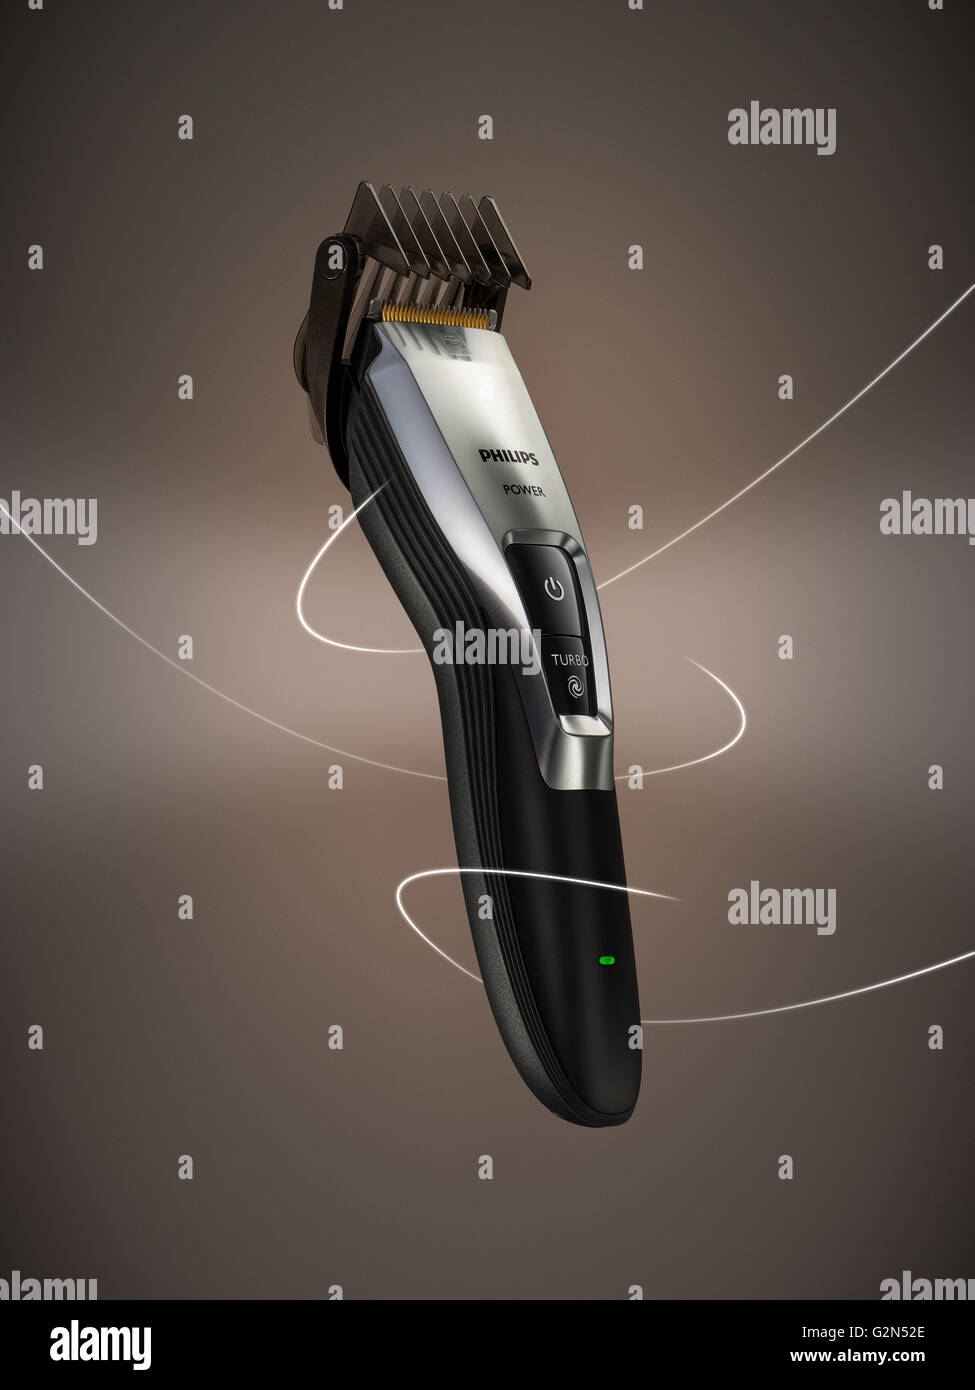 Philips trimmer. - Stock Image